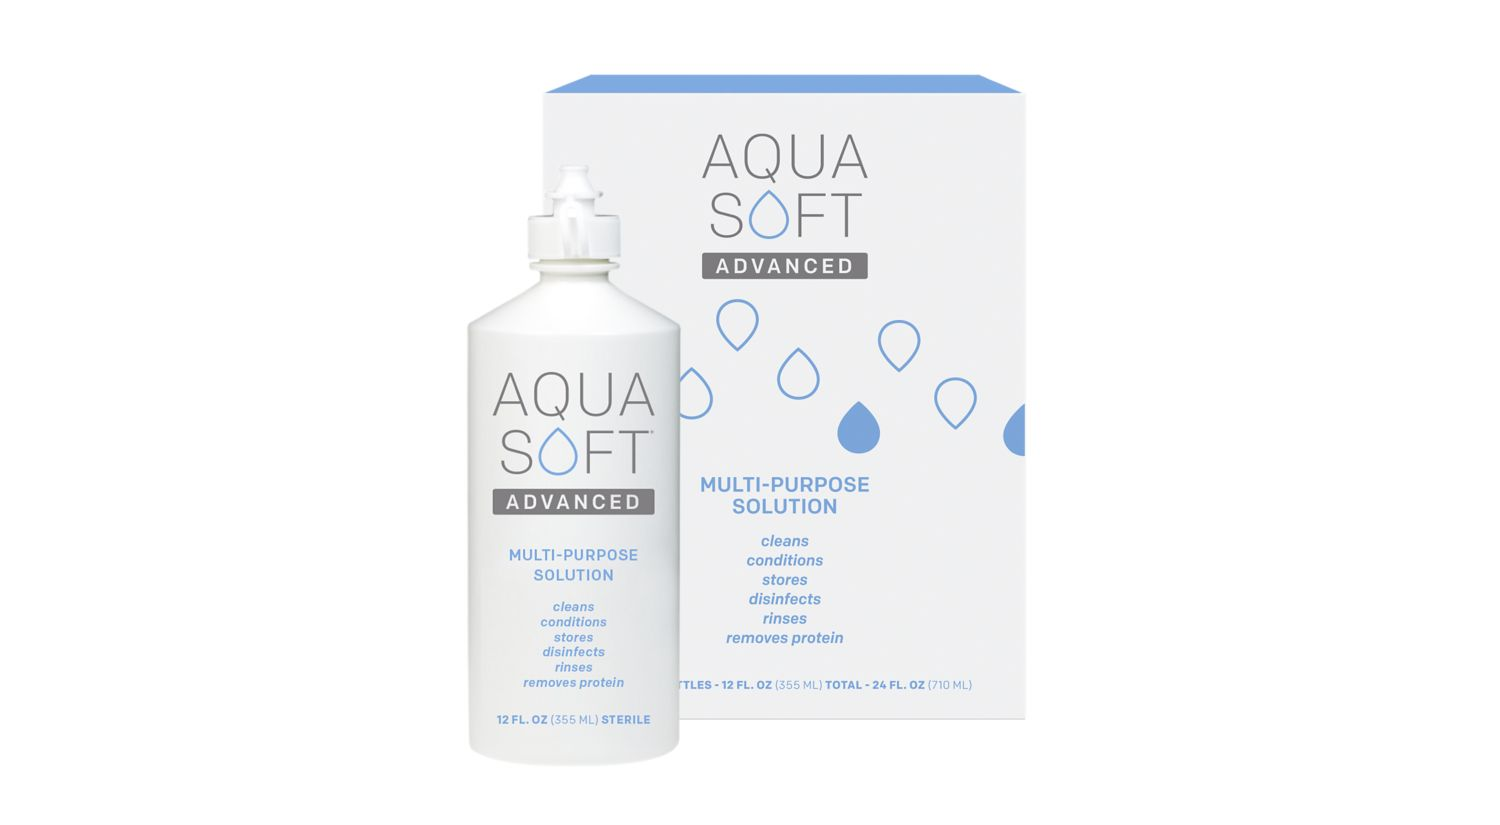 Aquasoft Advanced 2 pack